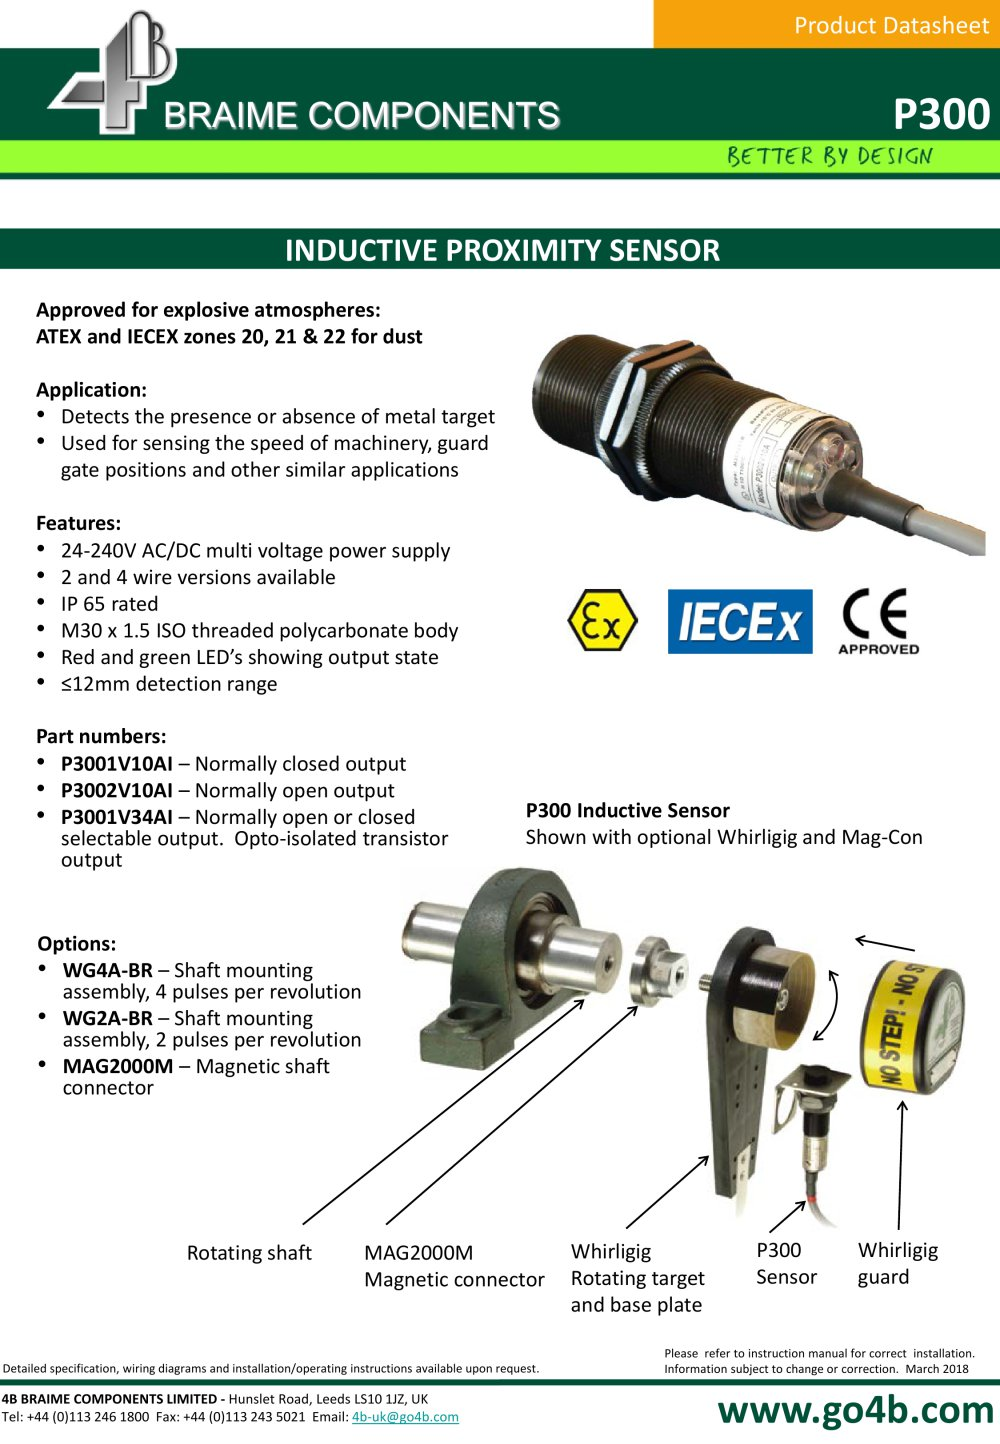 P300 - Inductive Proximity Sensor - 1 / 3 Pages